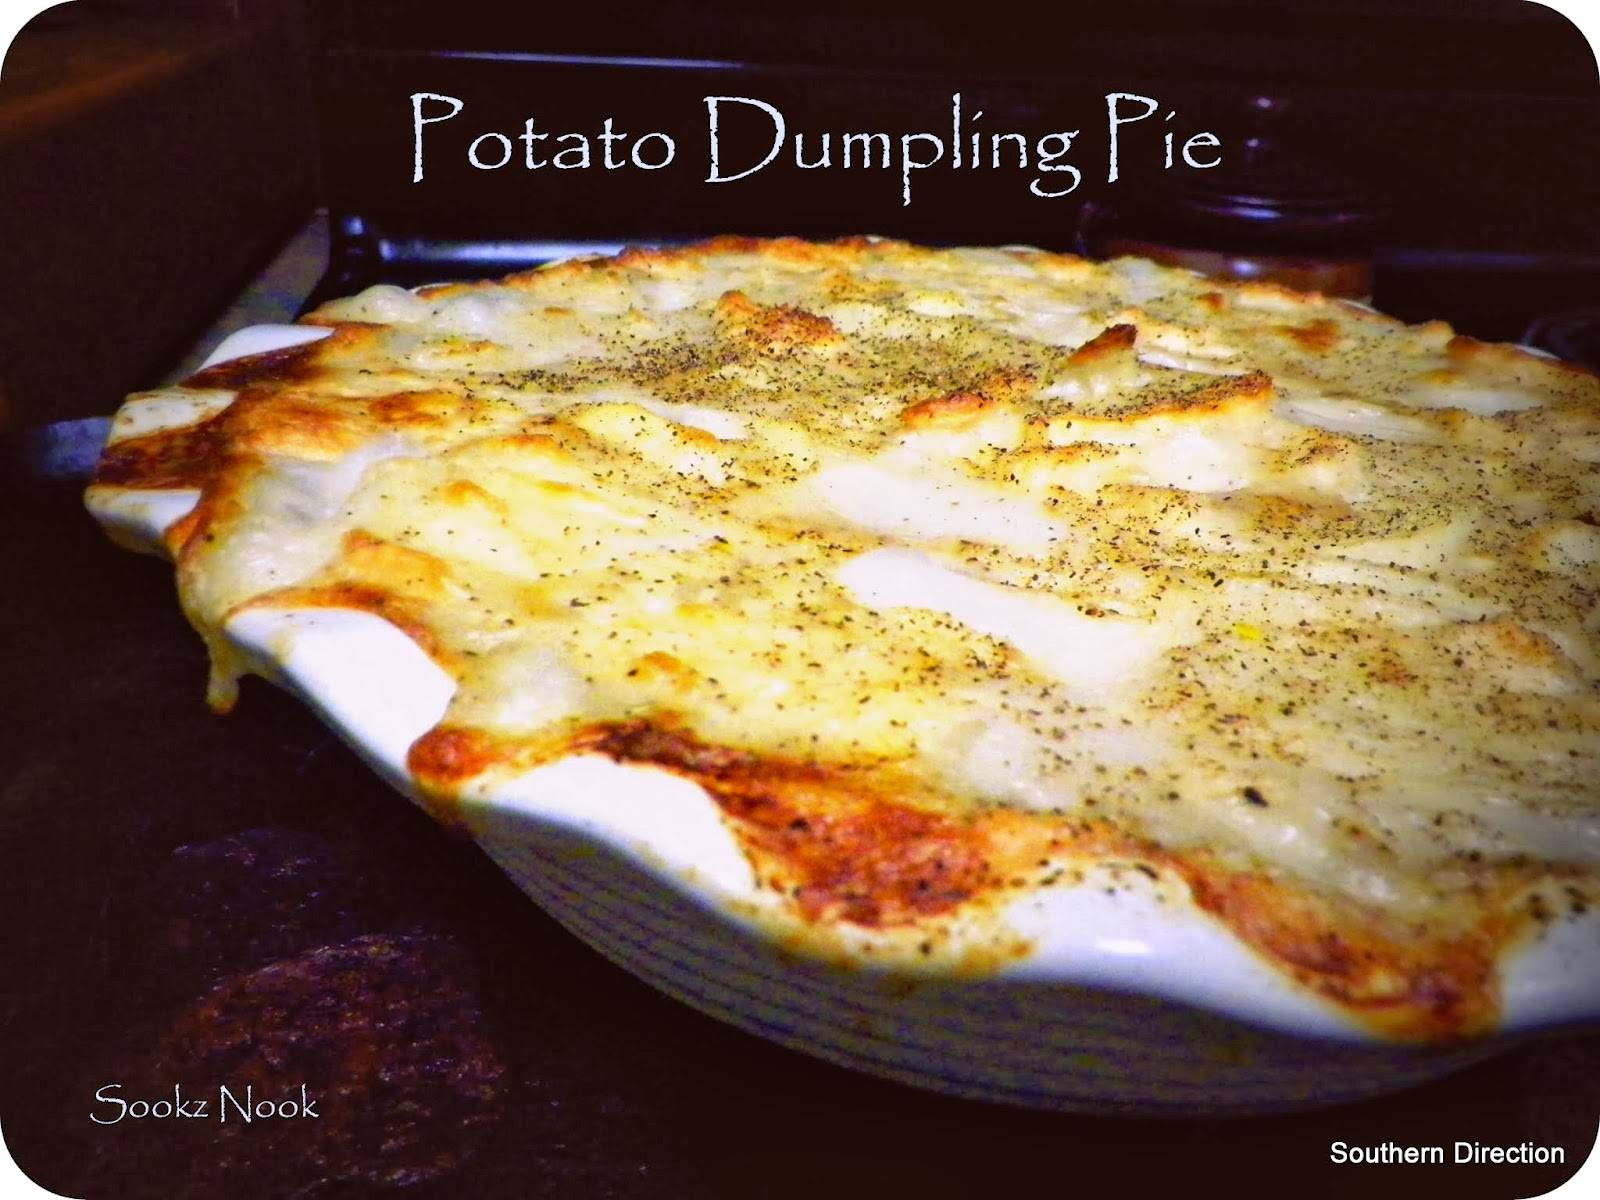 thumbnail for potato dumpling pie